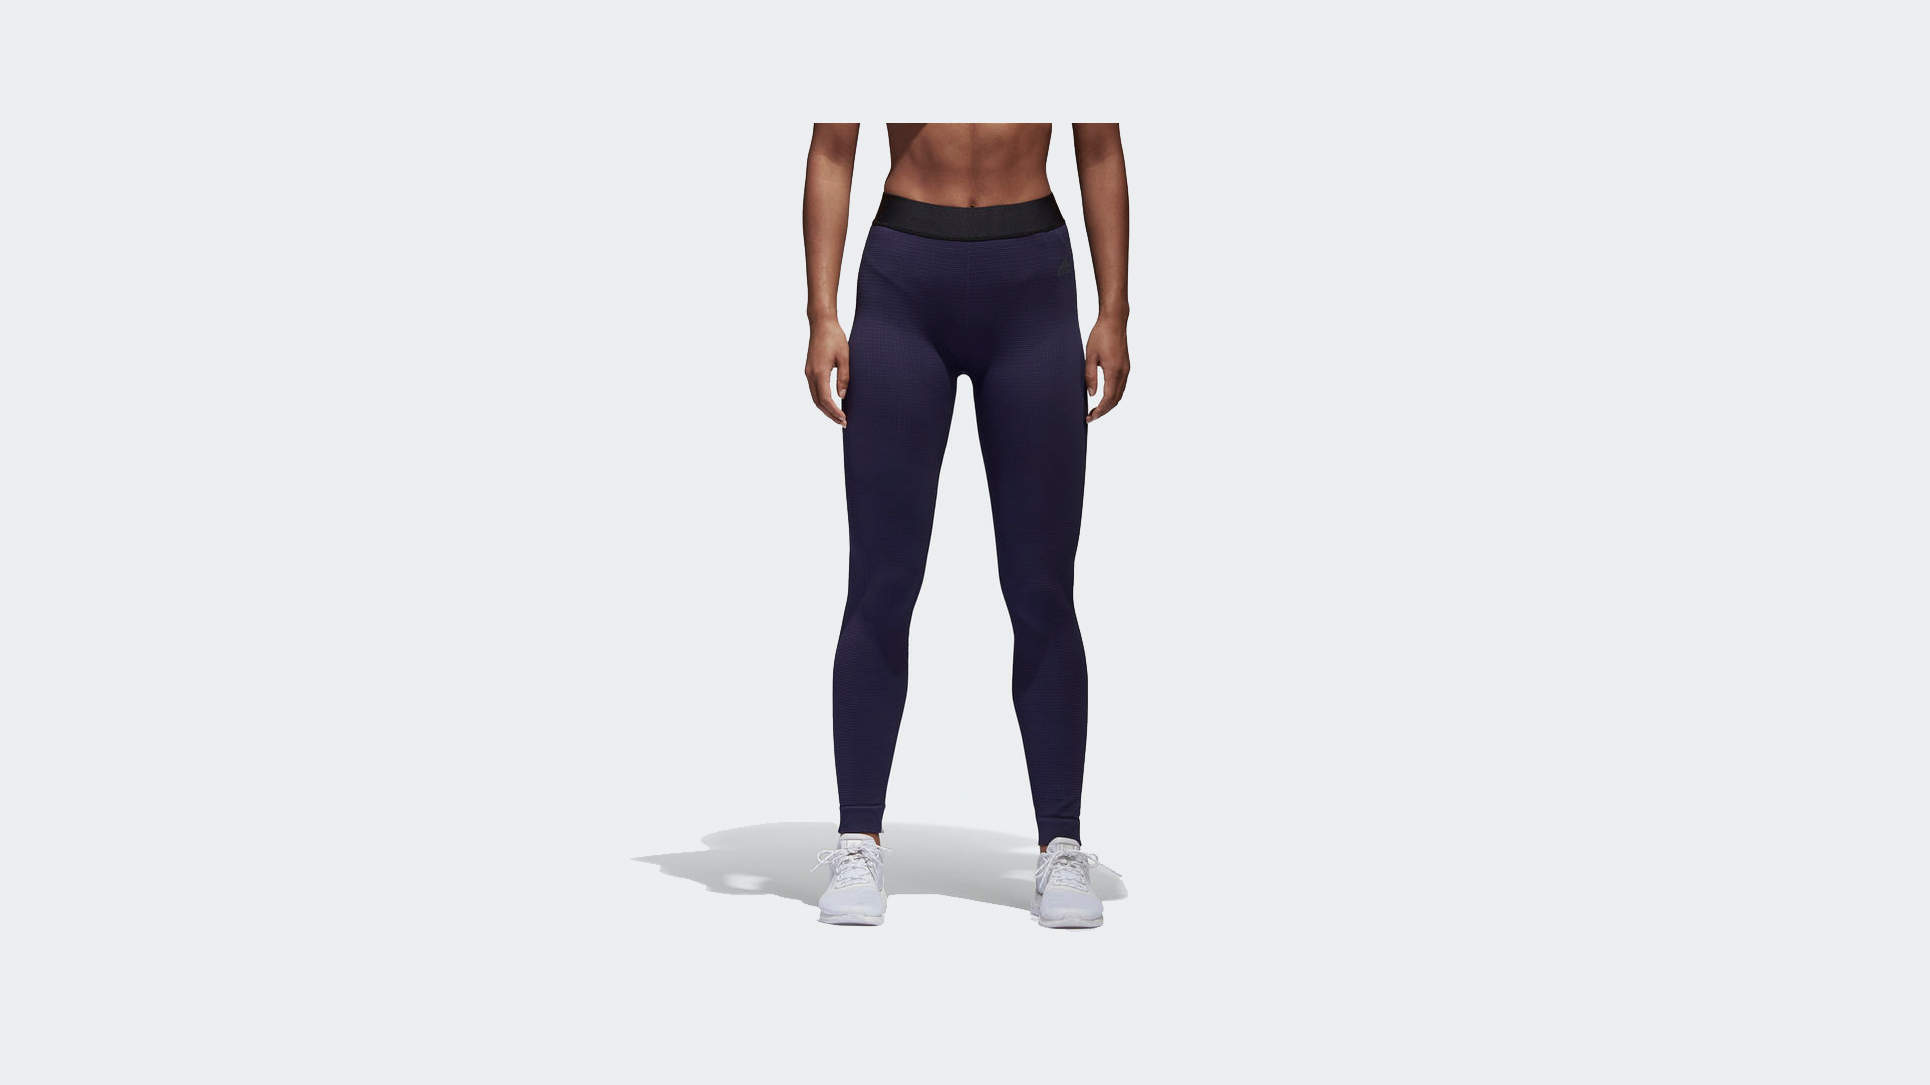 Adidas Climaheat Seamless Tight Sweat Winter Leggings Exercise